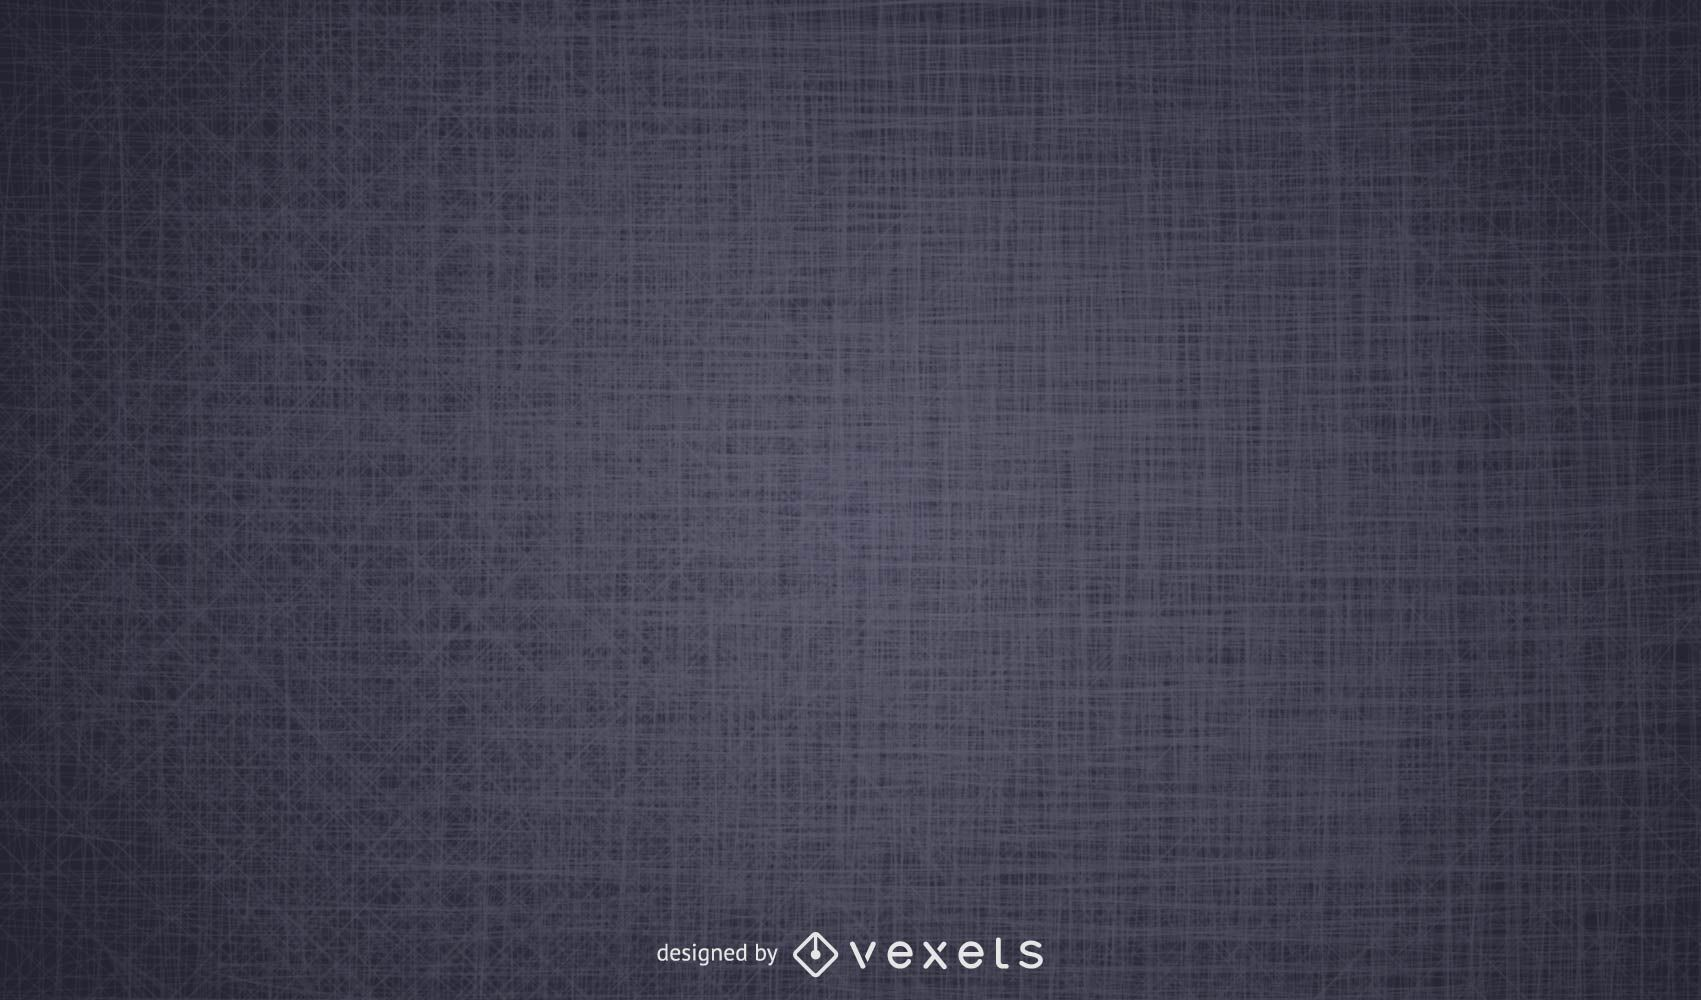 Grey Linen Texture Background Download Large Image 640x640px License User